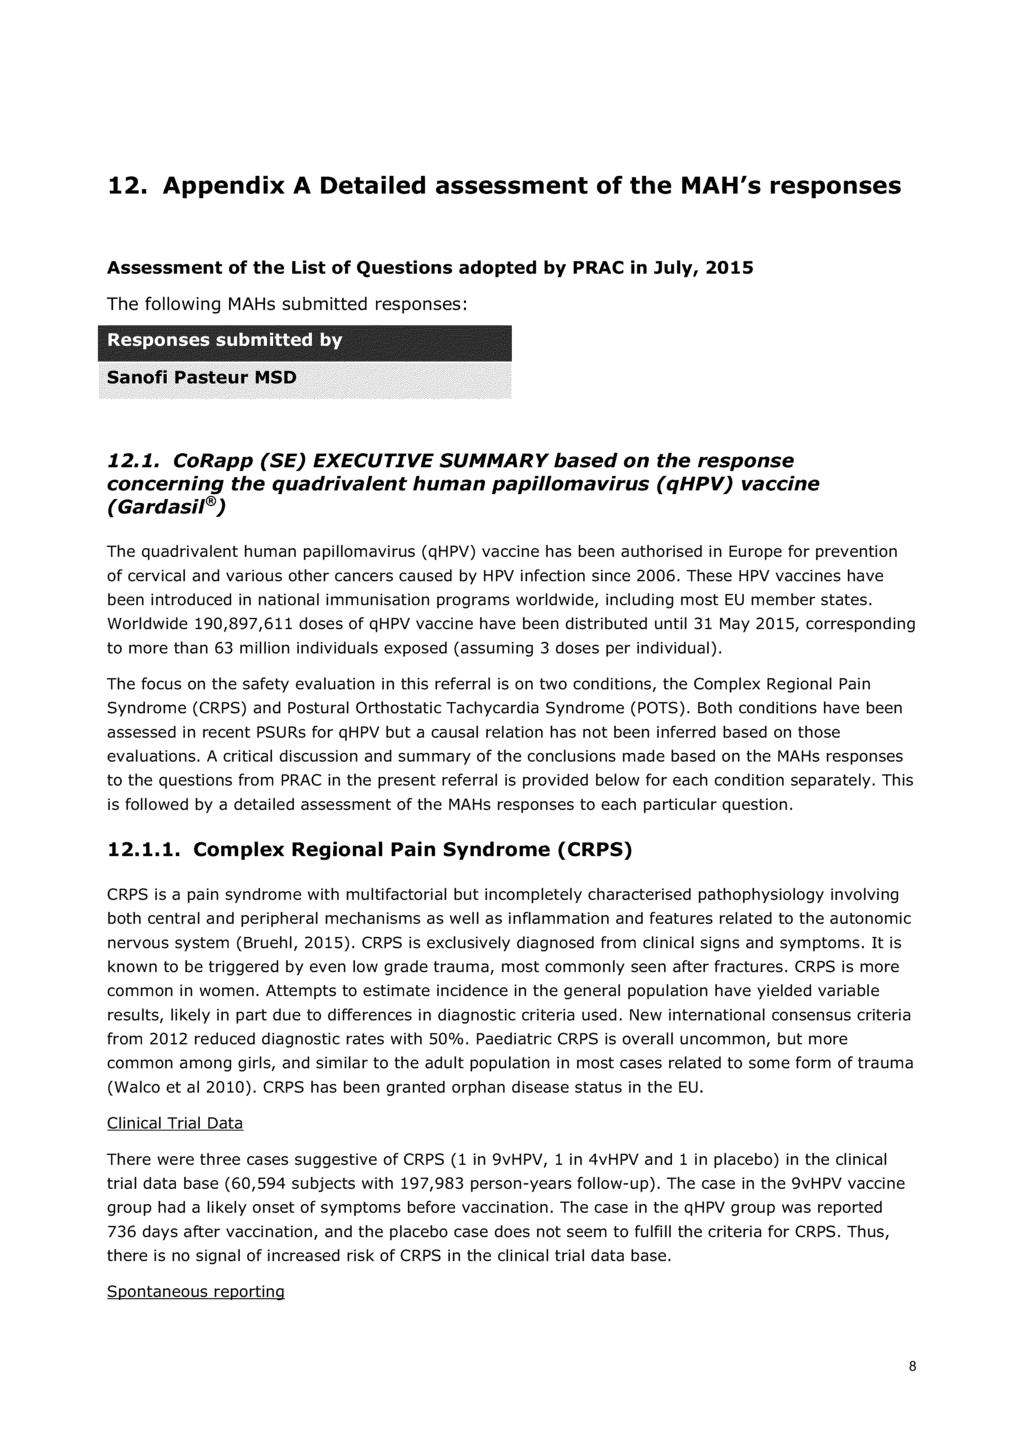 12. Appendix A Detailed assessment of the MAH's responses Assessment of the List of Questions adopted by PRAC in July, 2015 The following MAHs submitted responses: R!